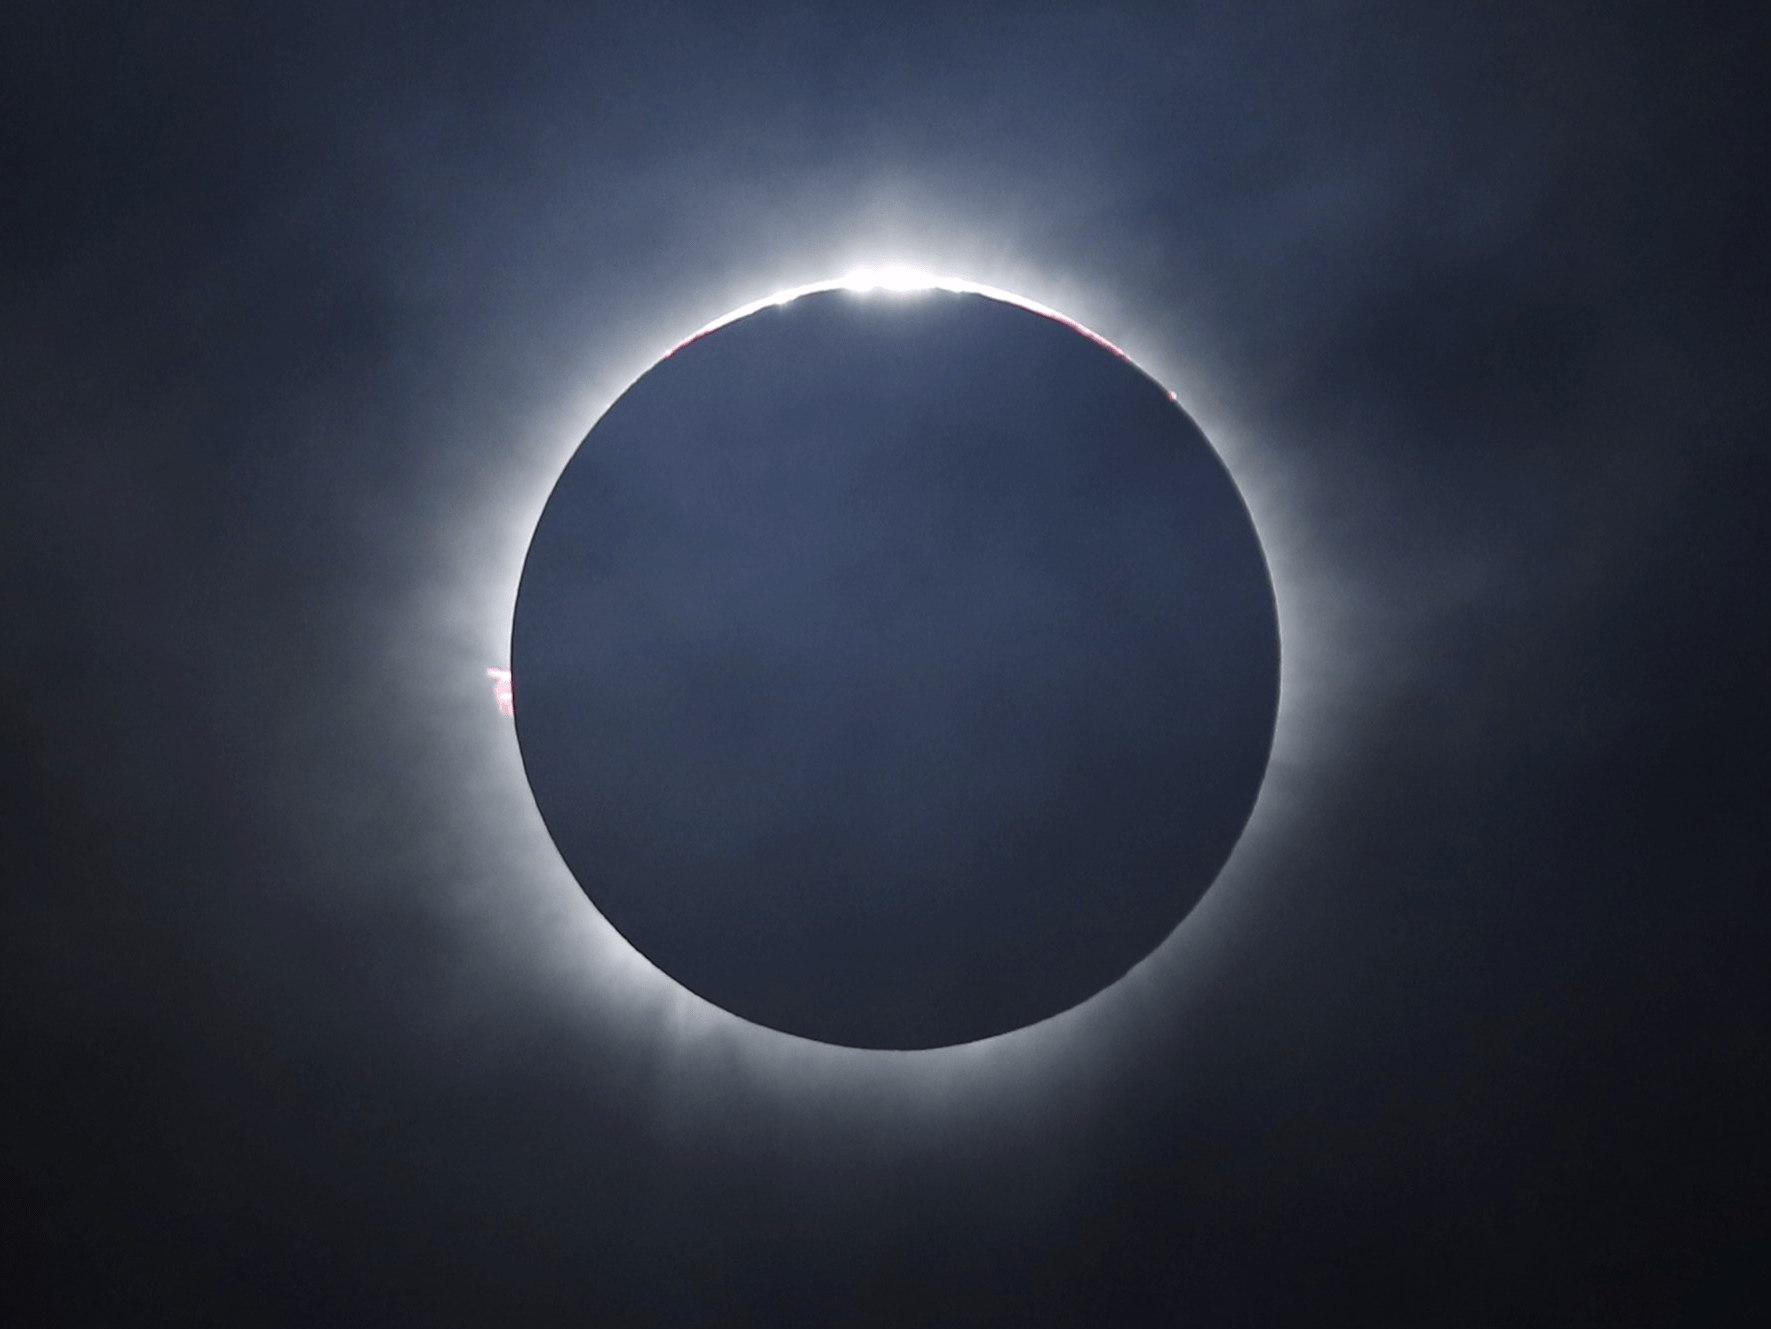 Sol A Clipser Solar Eclipse 2017 Where To Find Free Glasses To Stare At